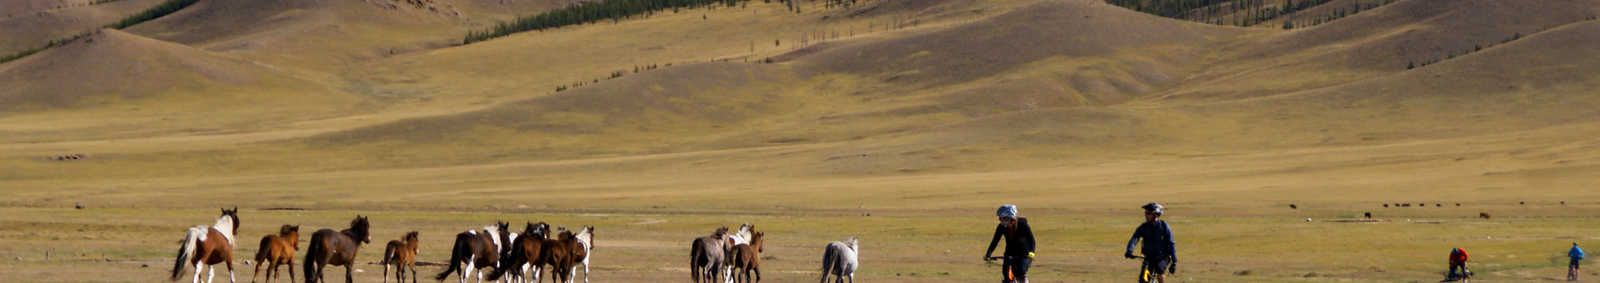 Horses and cyclists in Mongolia